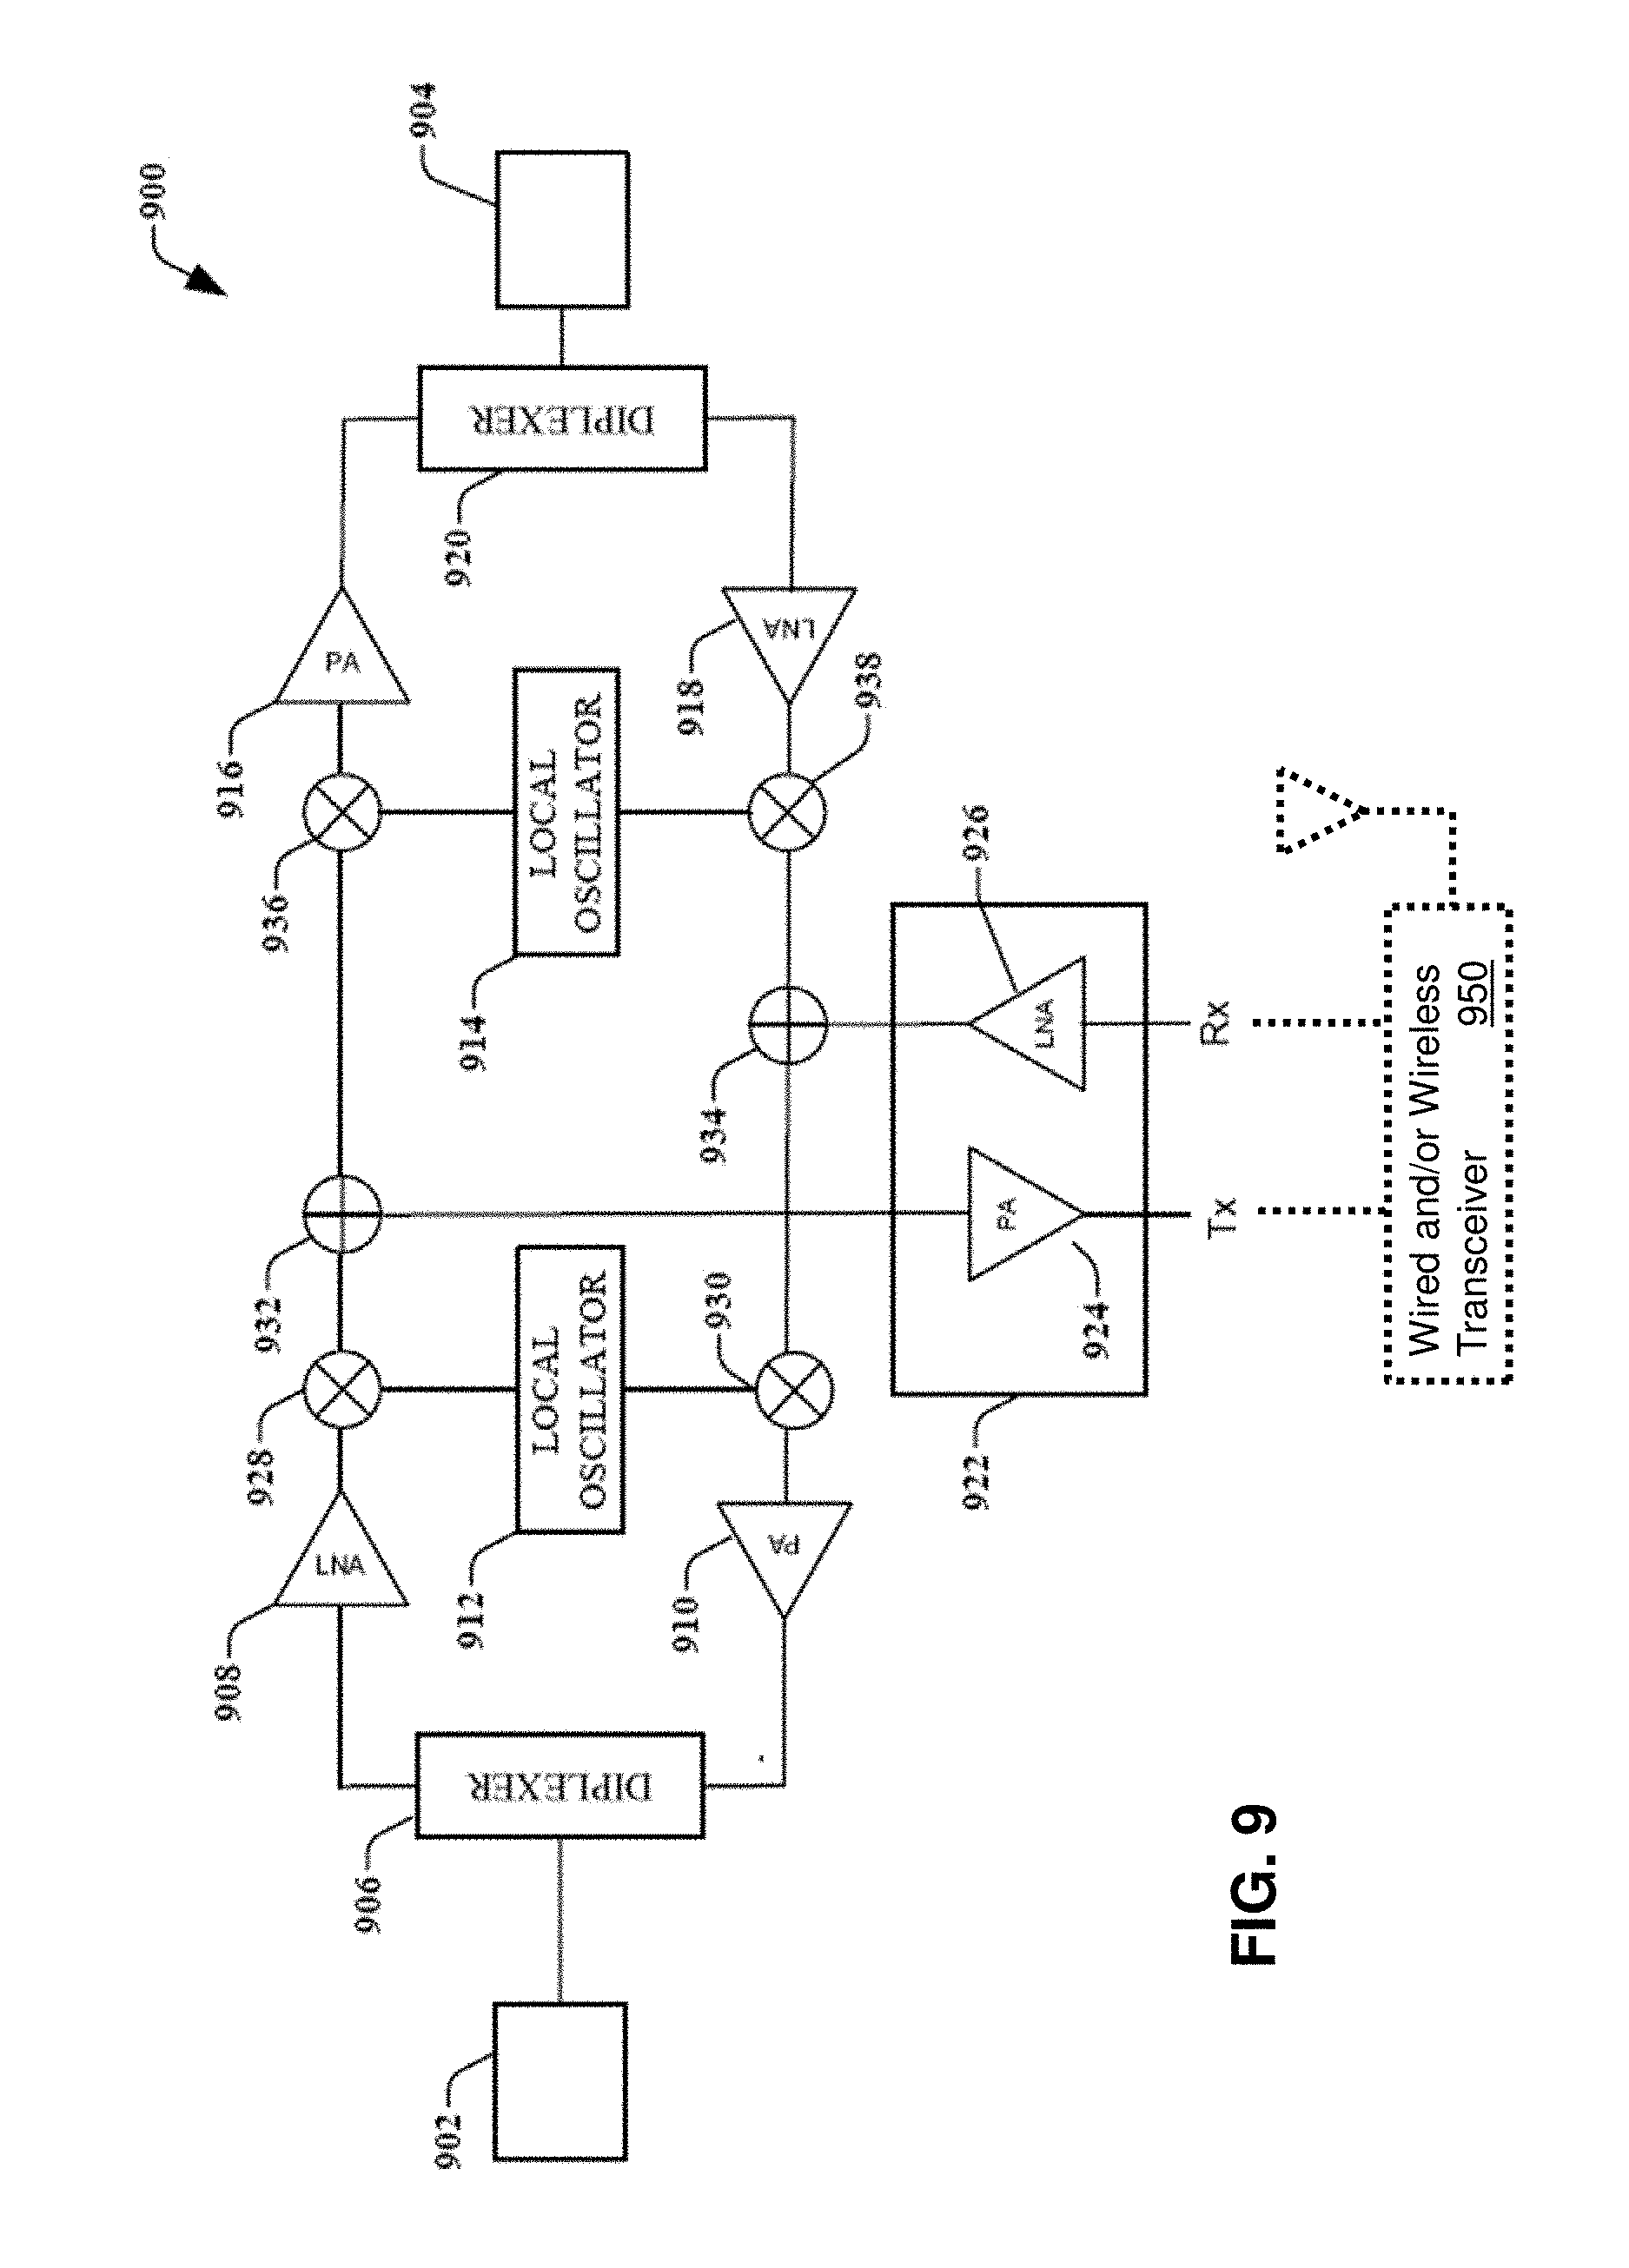 us9800327b2 apparatus for controlling operations of a